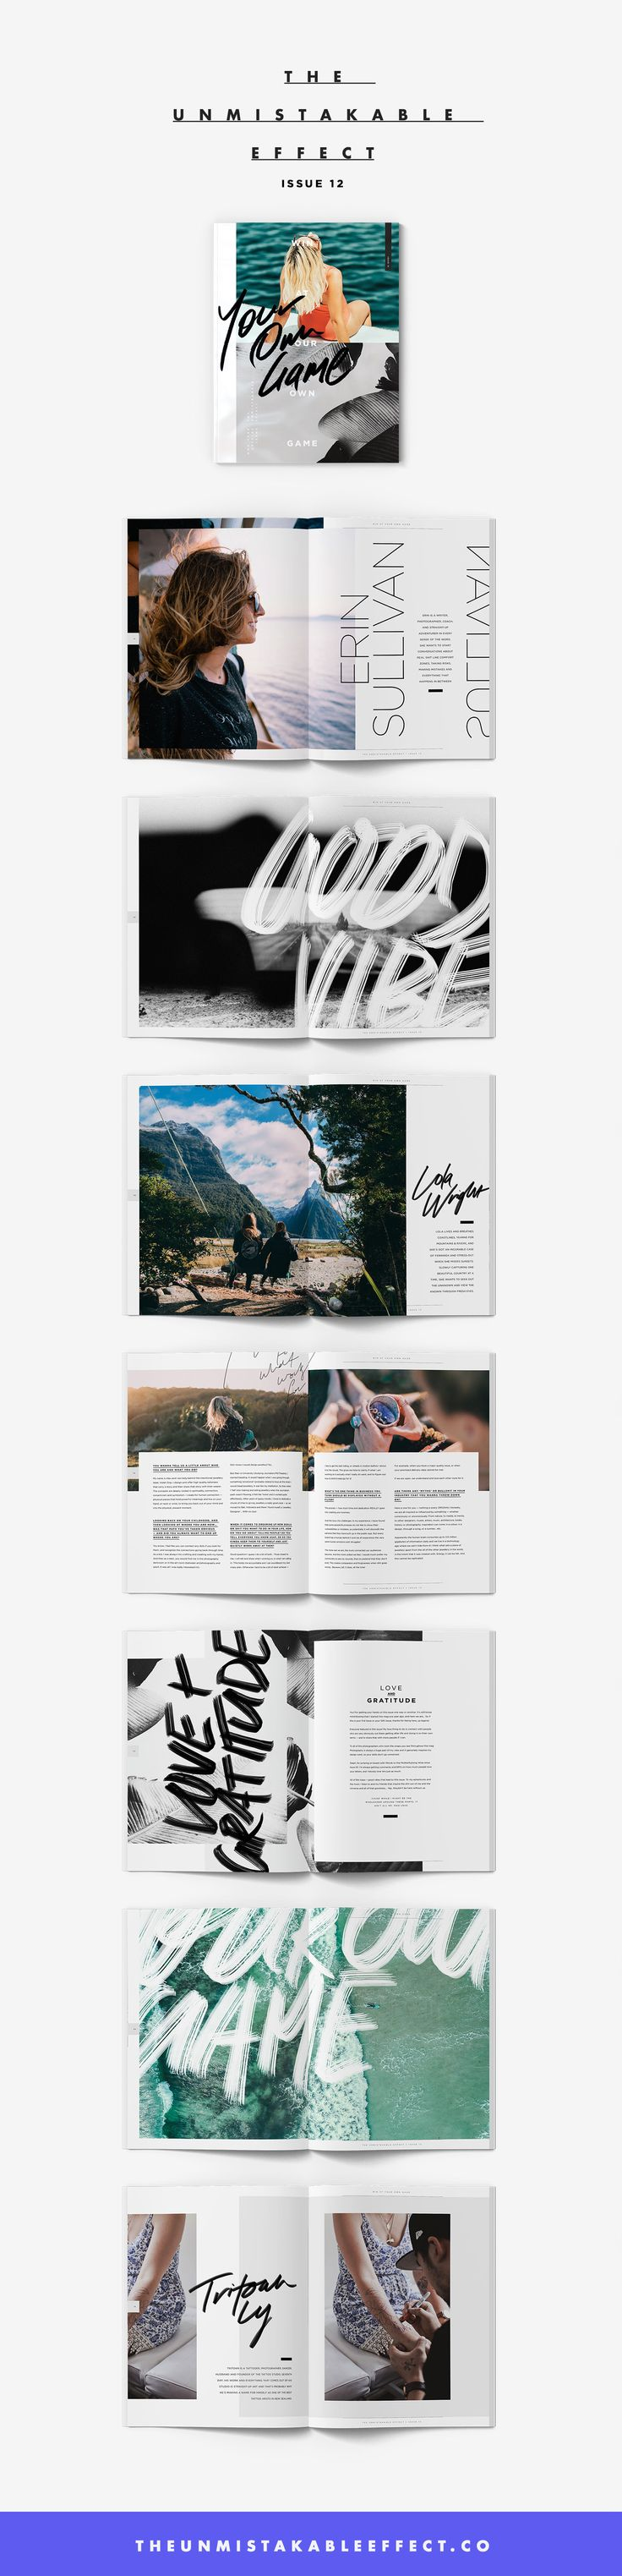 The Unmistakable Effect Issue 12 | Feat. Erin Sullivan, Rachel Ricketts, Jess Quinn, Lola Wright, Alexandra Olsen (Violet Gray), Tritoan Ly (Seventh Day Studio), and Steph Jagger | http://theunmistakableeffect.co/issue-12